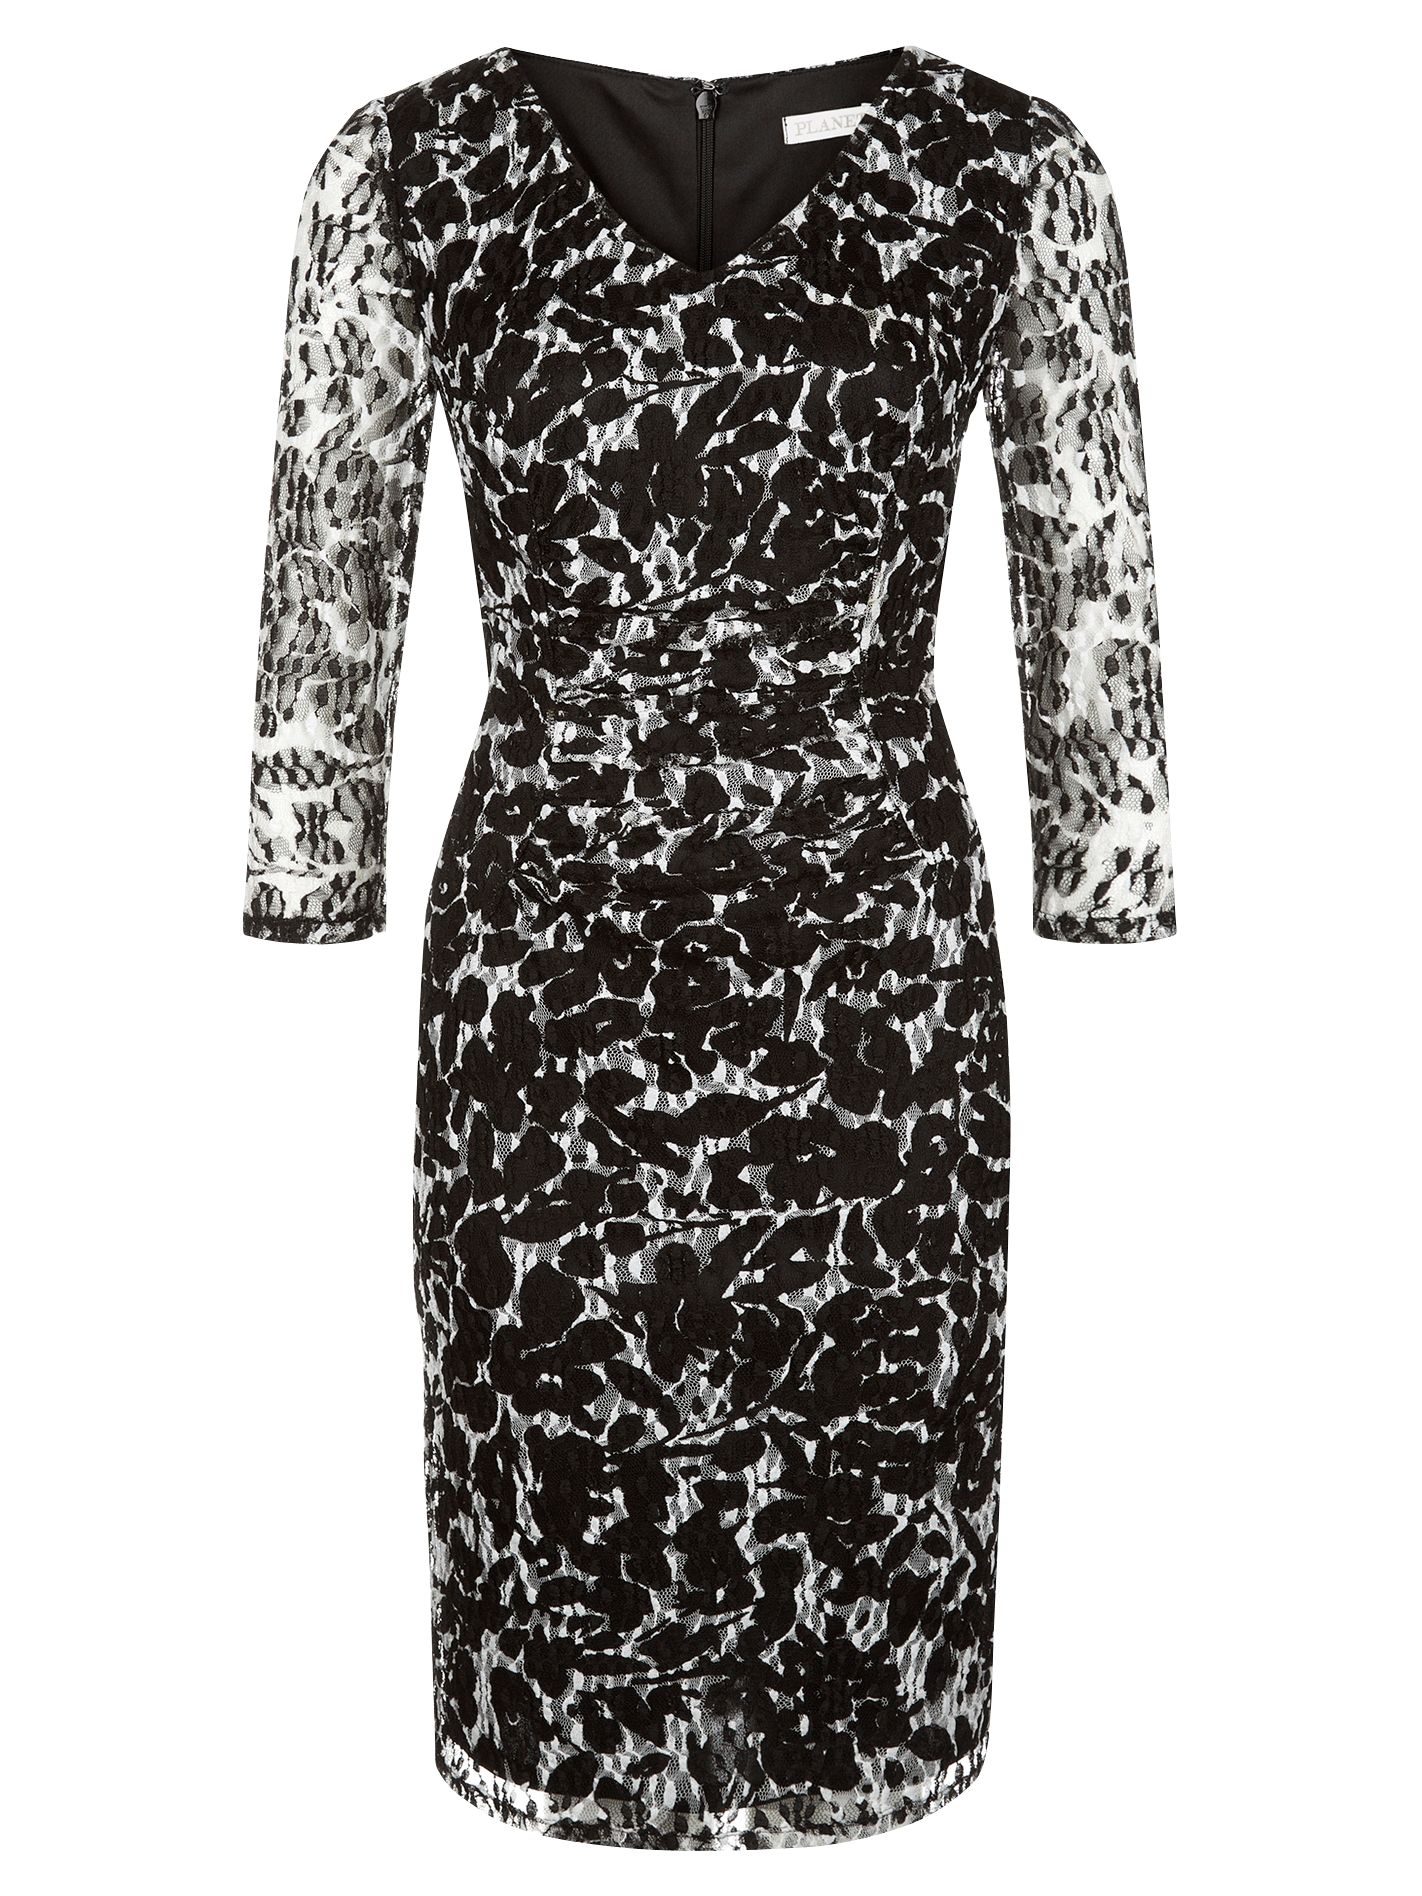 planet lace dress black / white, planet, lace, dress, black, white, 8|16|18|20|14|12|10, women, plus size, womens dresses, special offers, womenswear offers, latest reductions, womens dresses offers, 1855094